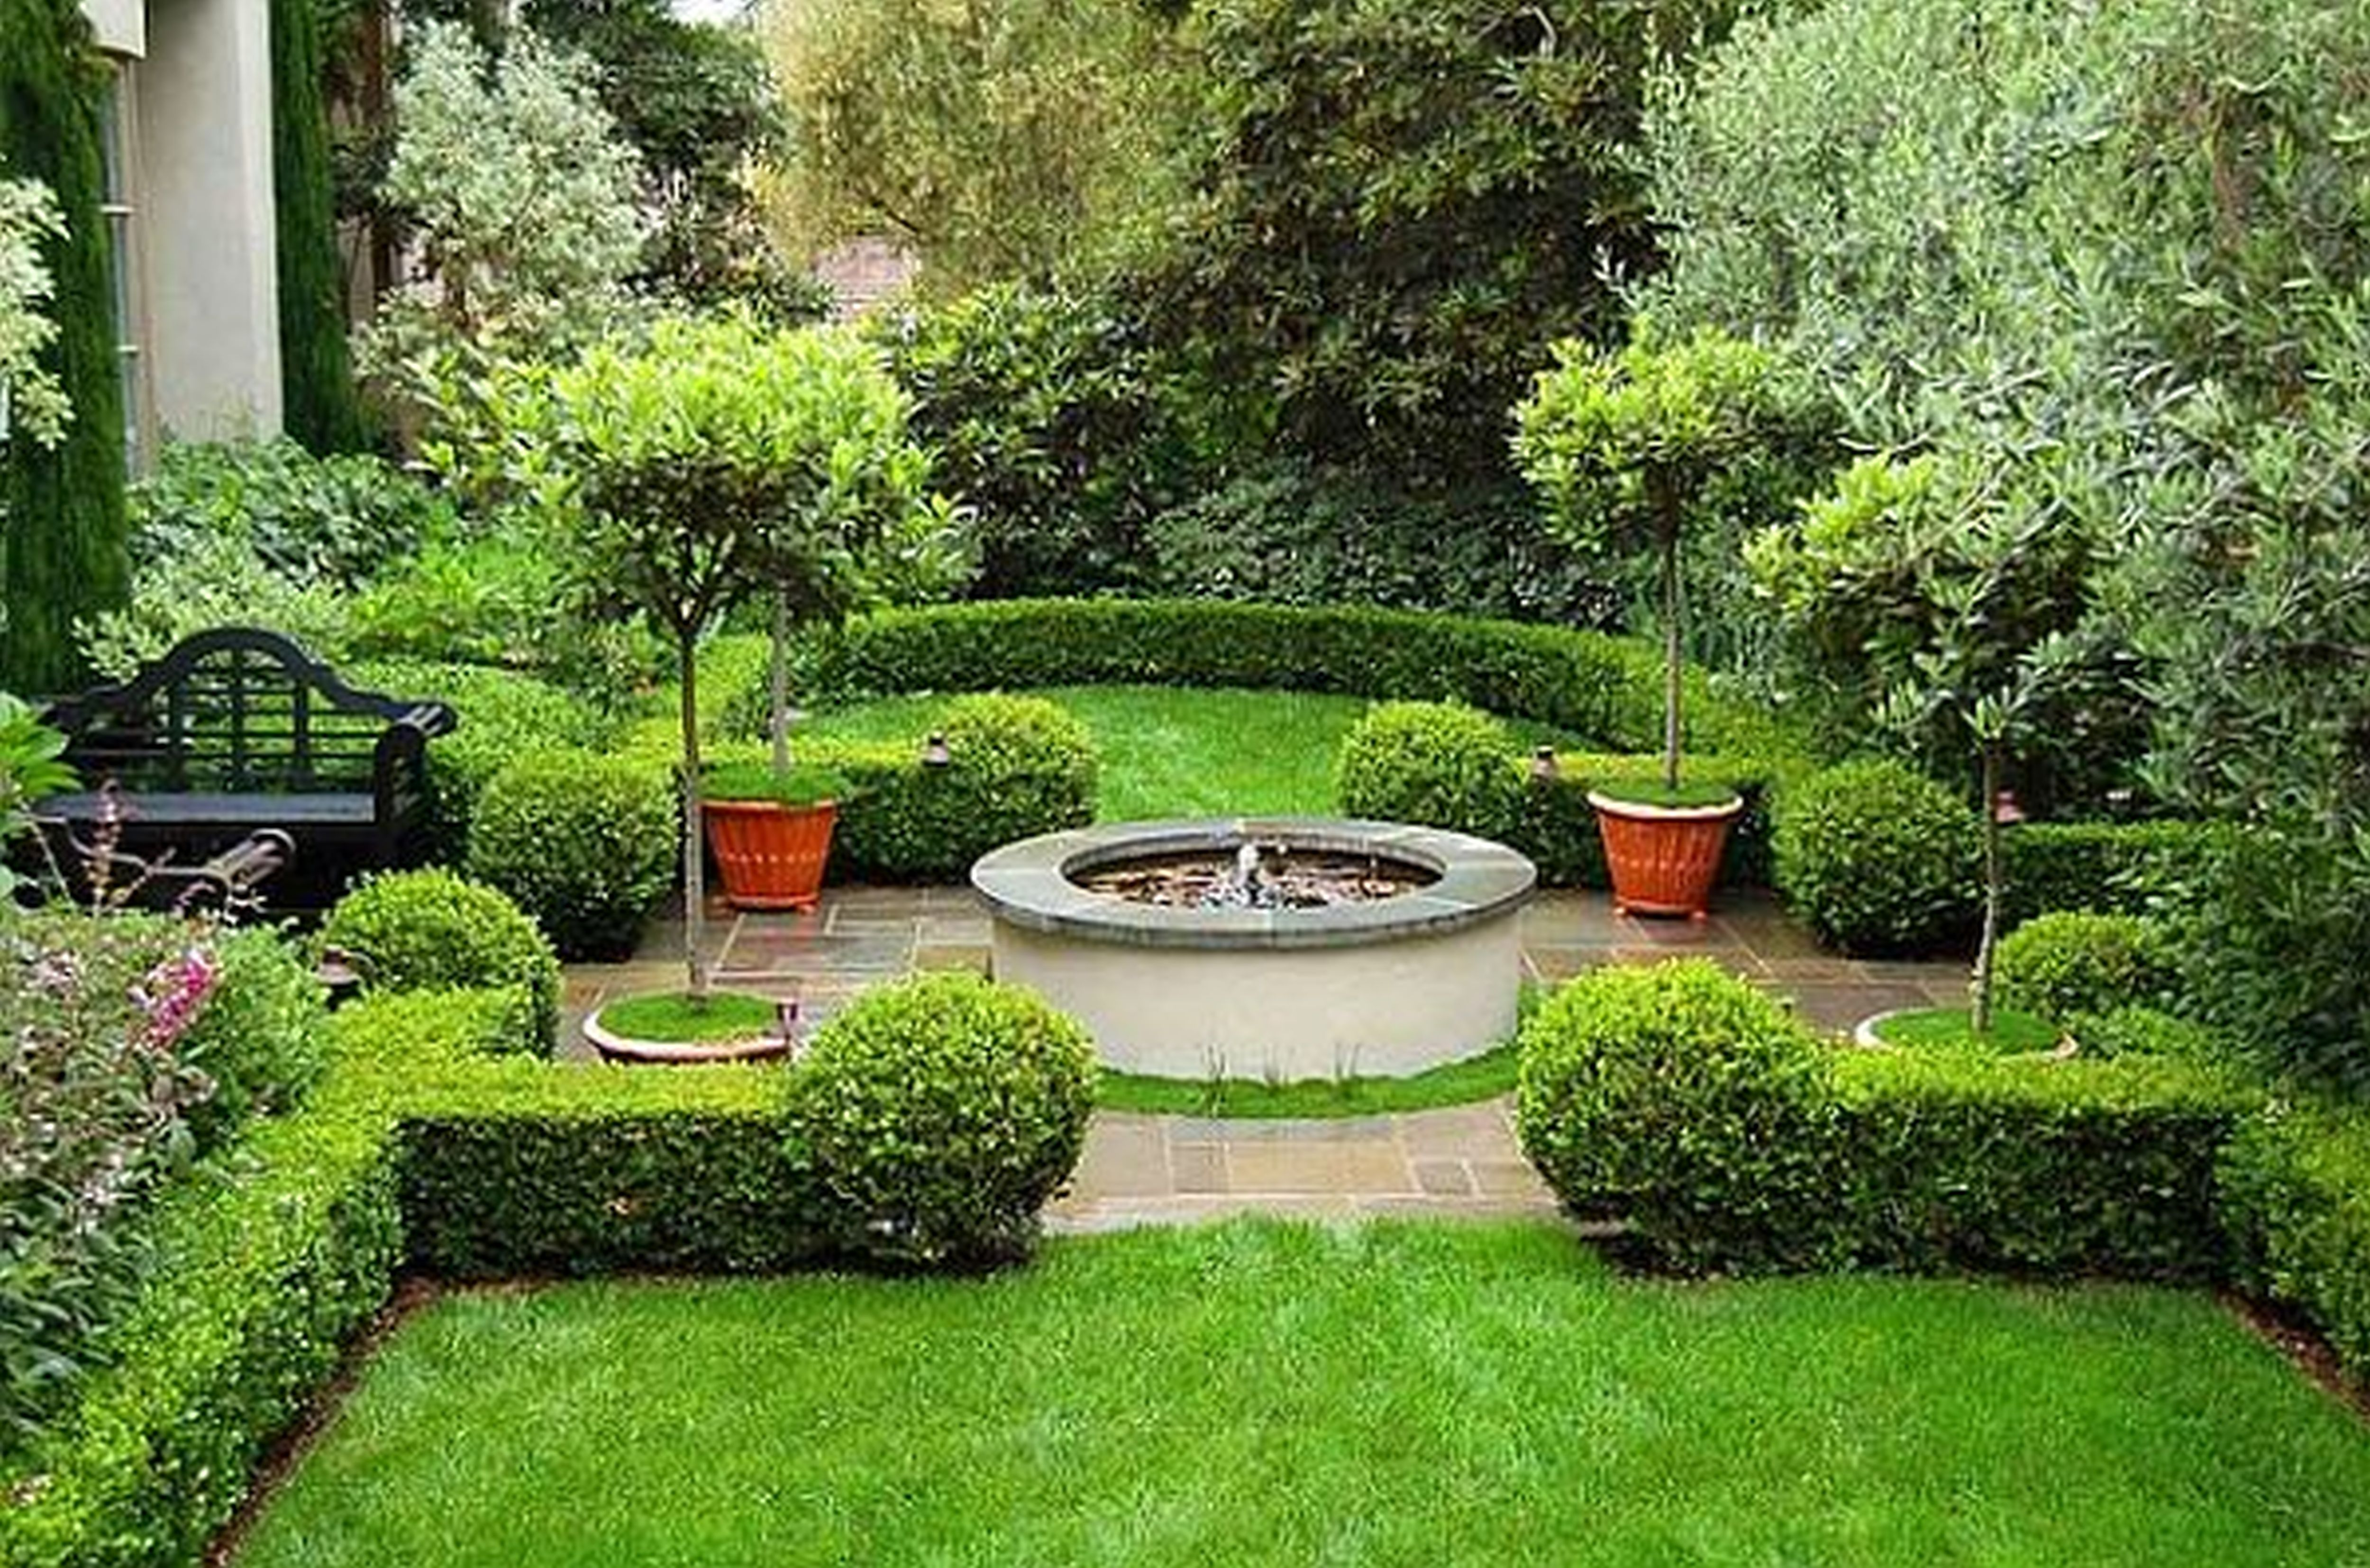 Planning landscaping organic garden landscaping for Home landscaping ideas